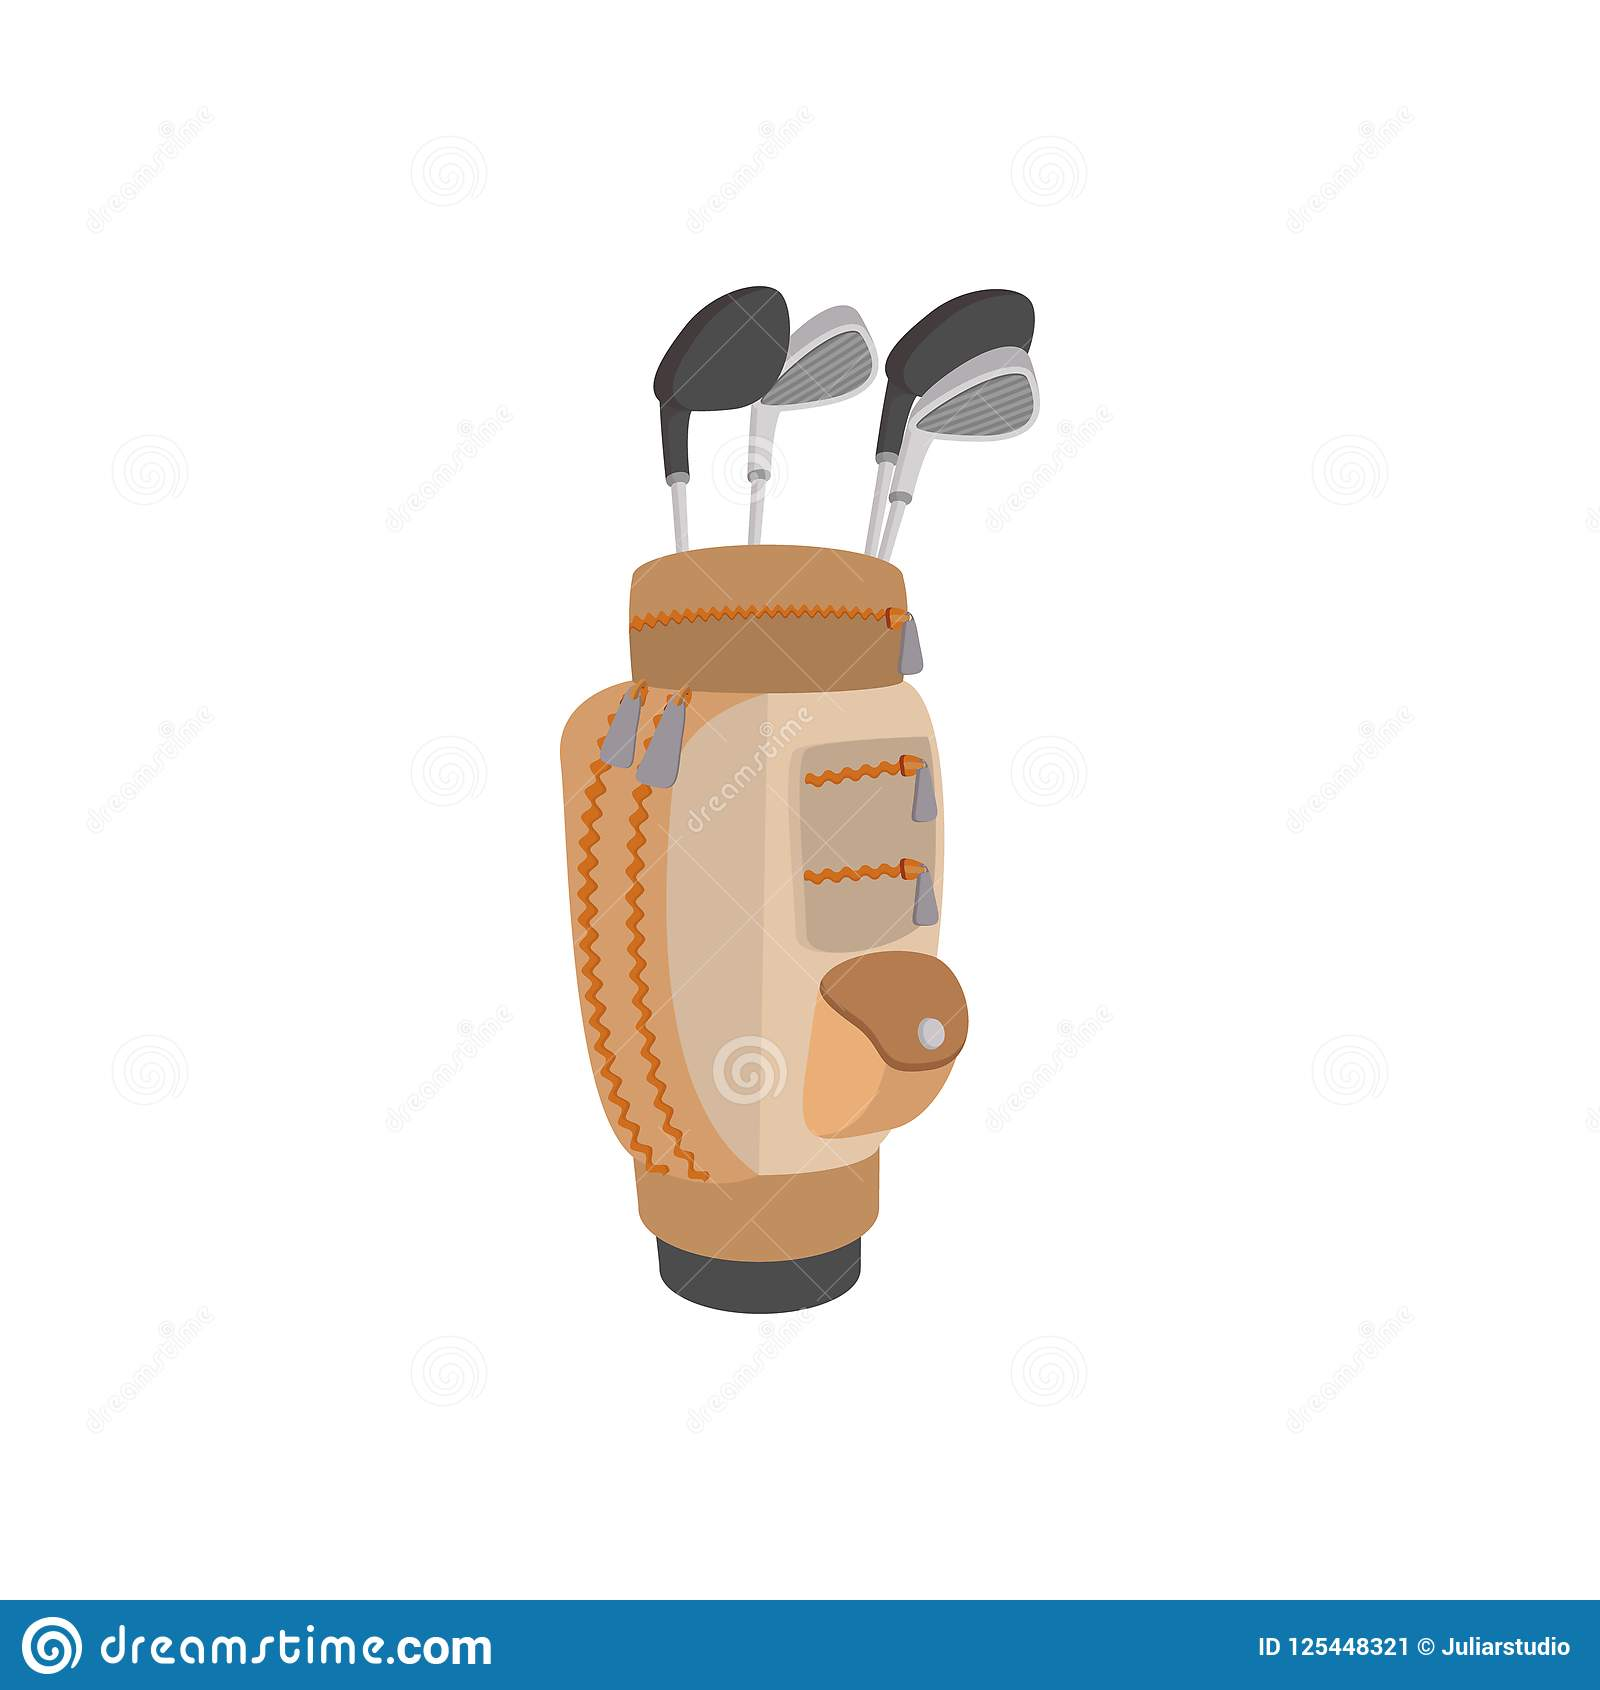 Golf Clubs In A Brown Bag Cartoon Icon Stock Illustration ... on cartoon hat, cartoon men, cartoon bowling bag, cartoon camera, cartoon star, cartoon golfer, cartoon tennis bag, cartoon gloves, cartoon nut sack, cartoon wine bag, cartoon pool bag, cartoon butterfly, cartoon putter, cartoon school bag, cartoon beach bag, cartoon clubs, cartoon mother, cartoon traveling bag, cartoon baseball bag, cartoon shorts,